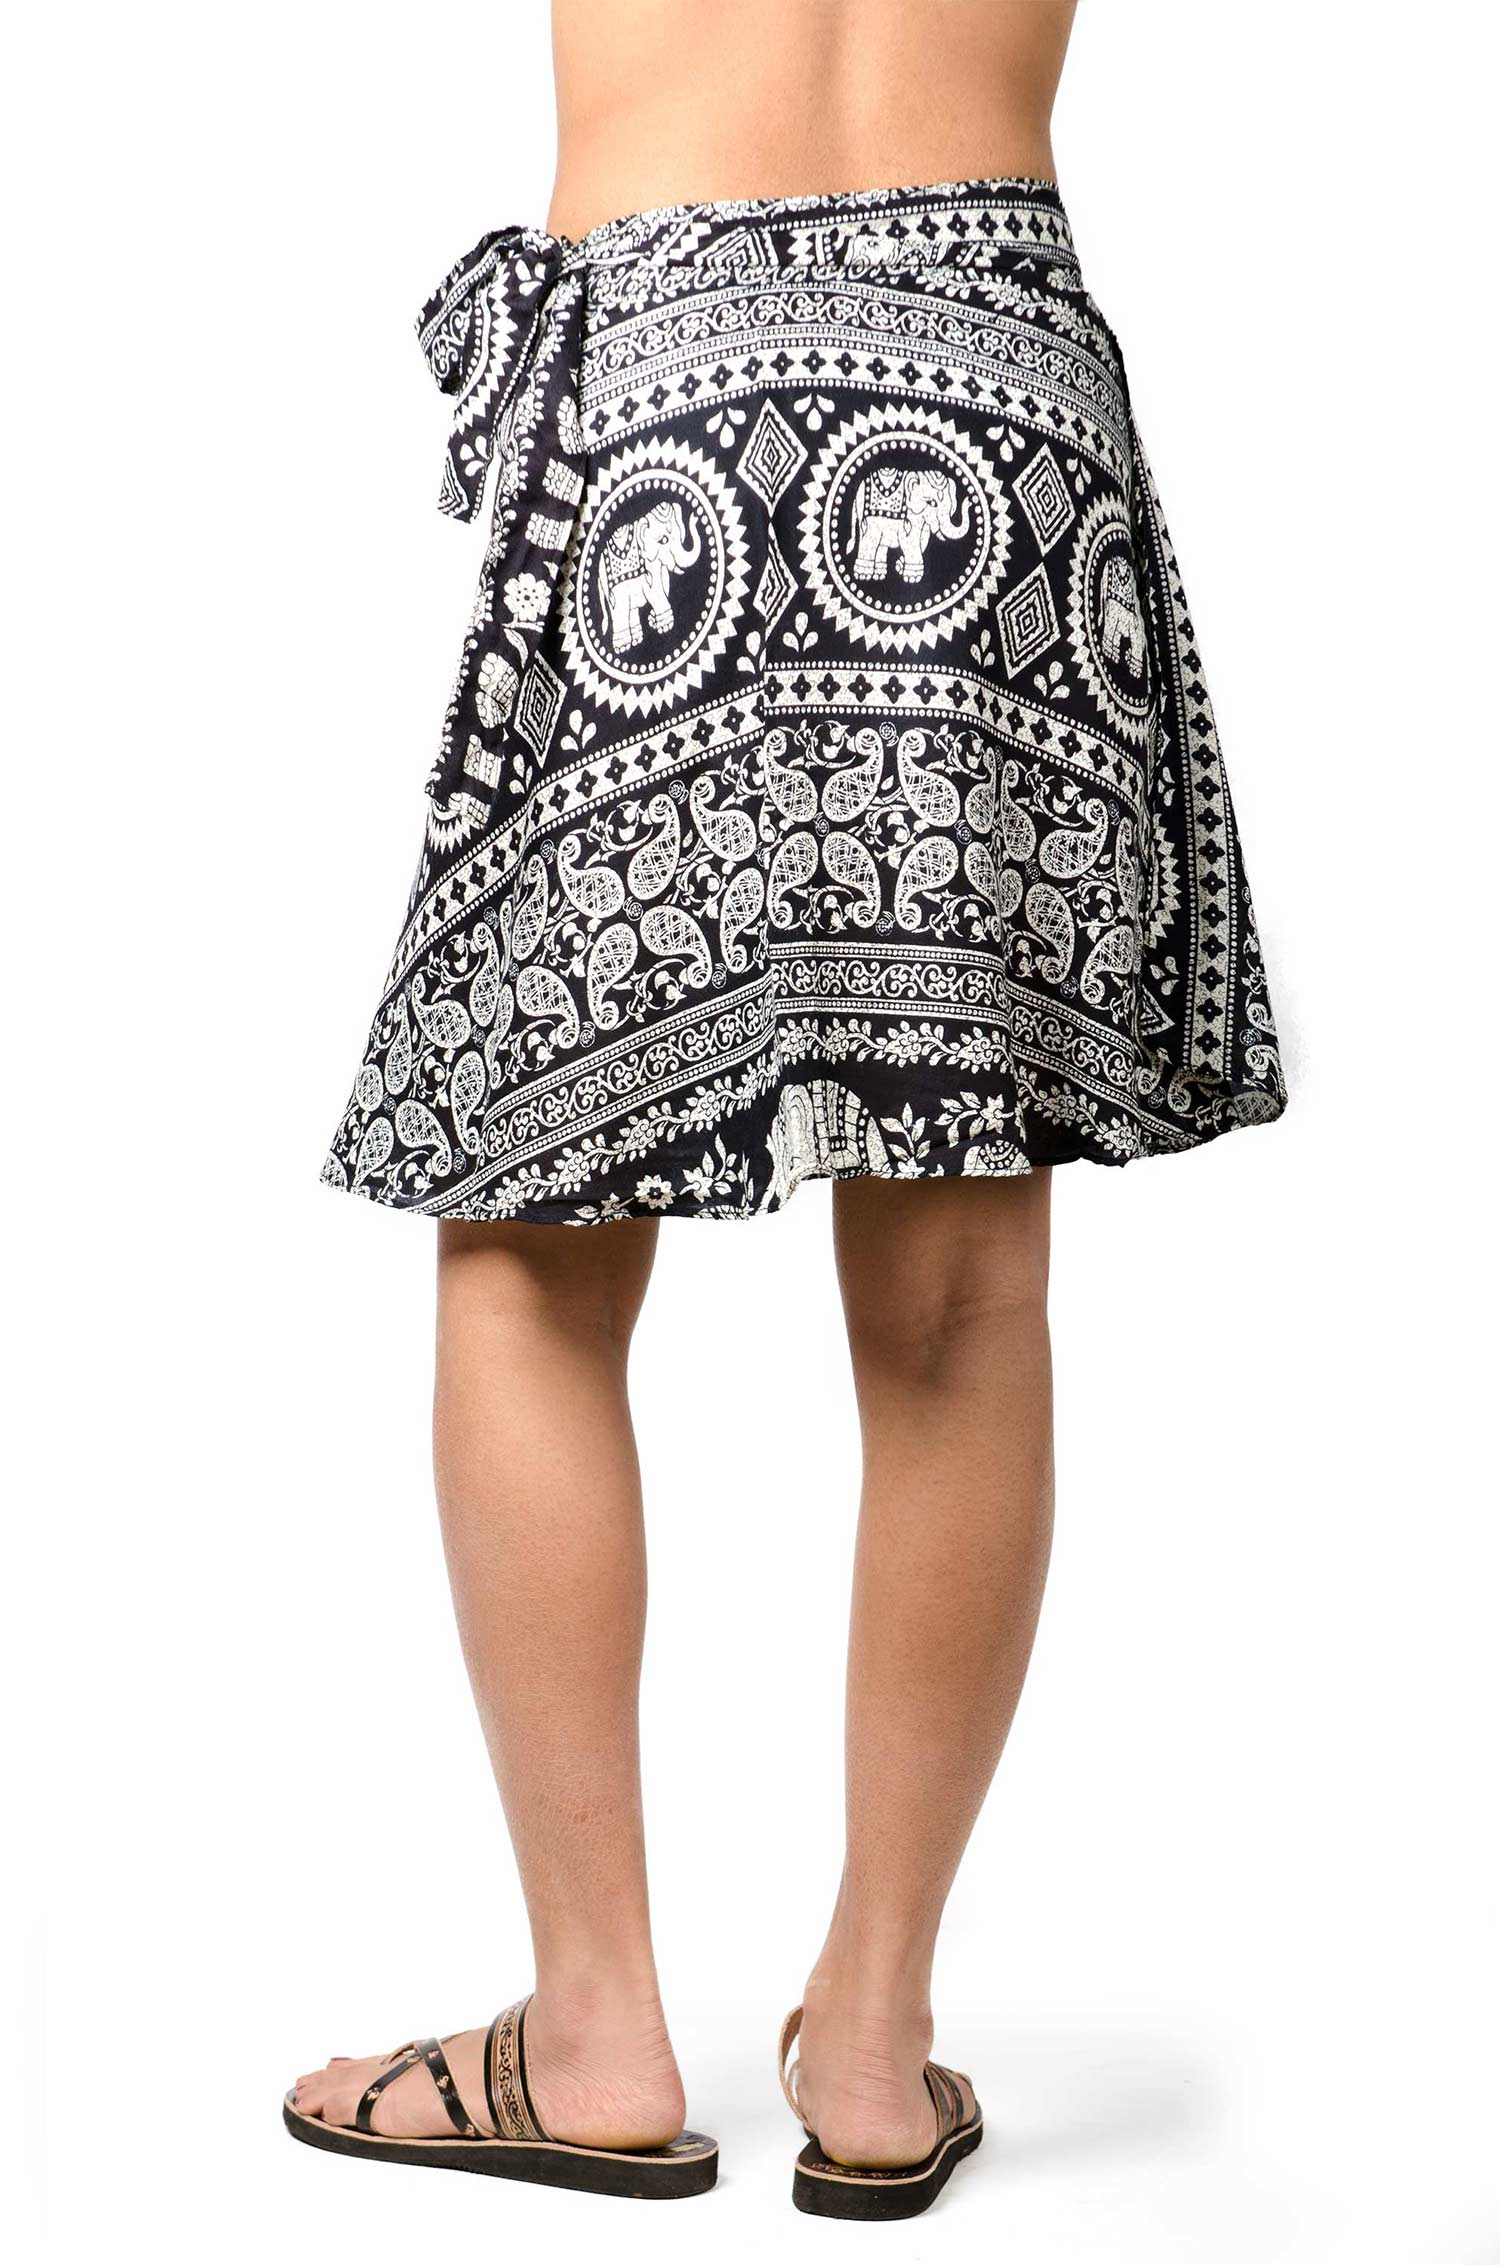 Elephant Print Short Wrap Skirt Black